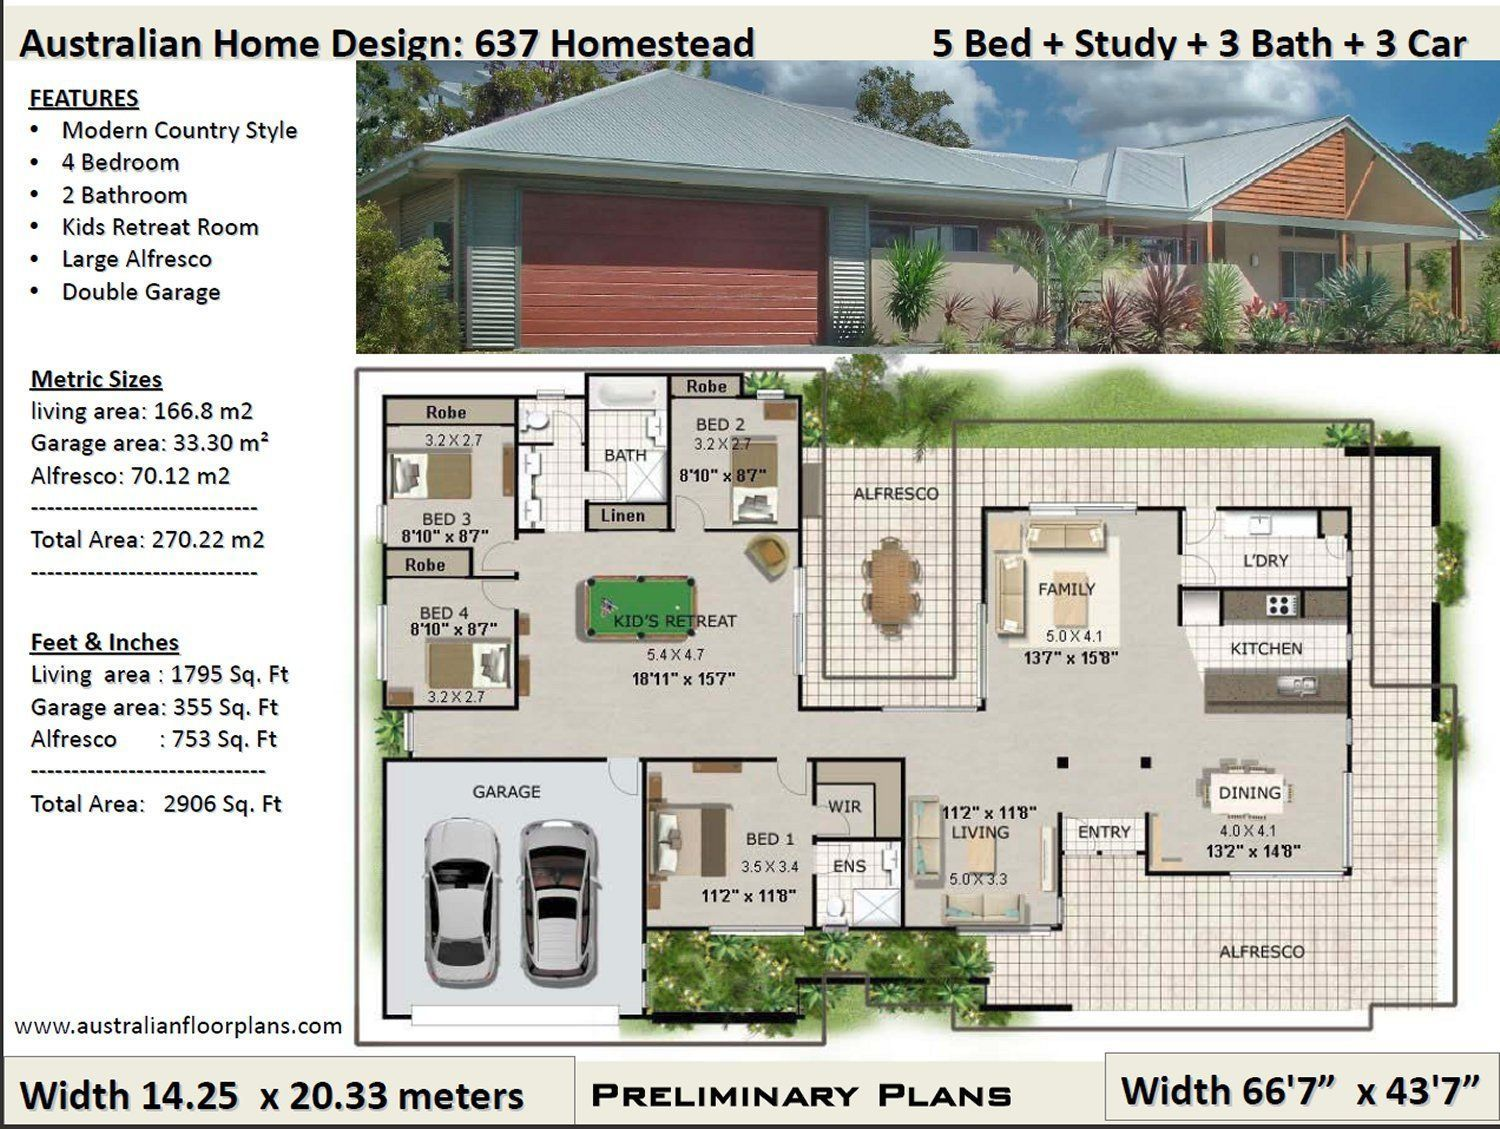 270m2 2906 Sq Ft 4 Bed Acreage Style 4 Bedroom House Plan Australia Acr Country Style House Plans House Plans Australia Colonial House Plans